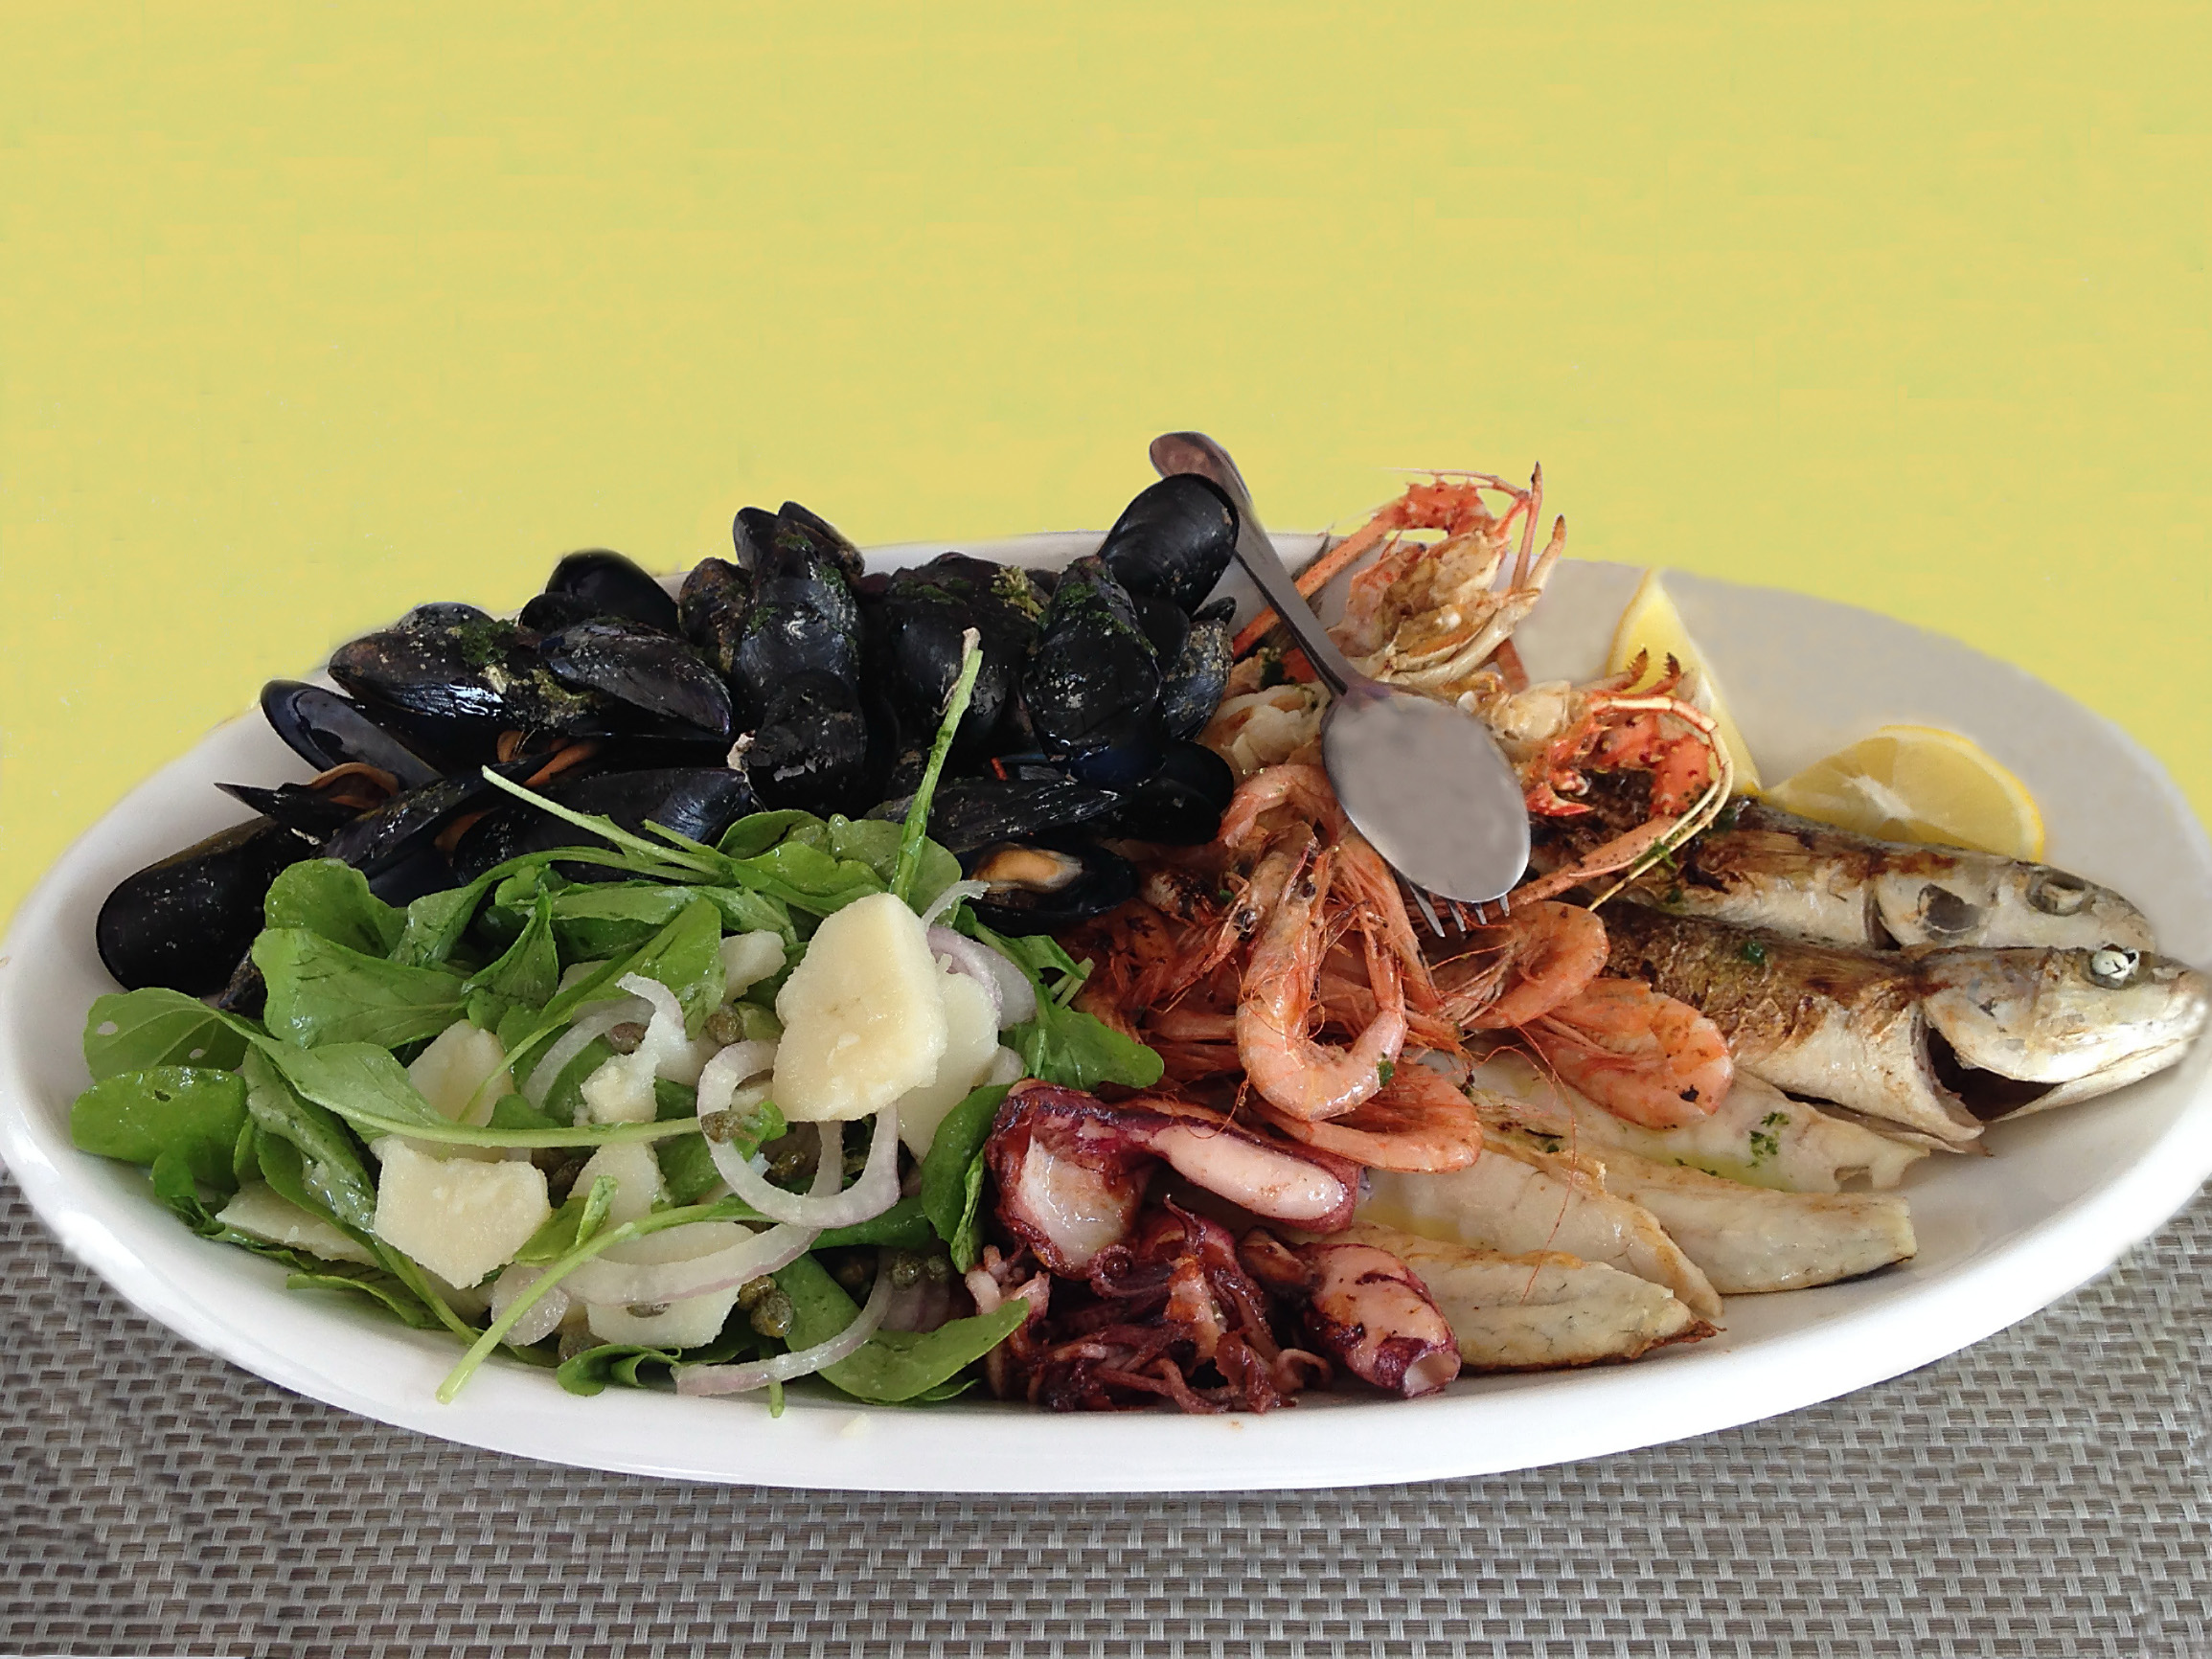 Isolated Seafood Platter: Fresh mixed grilled mussels, langoustines, shrimps, fish decorated with arugula, onion, lemon and sauce on a white plate.